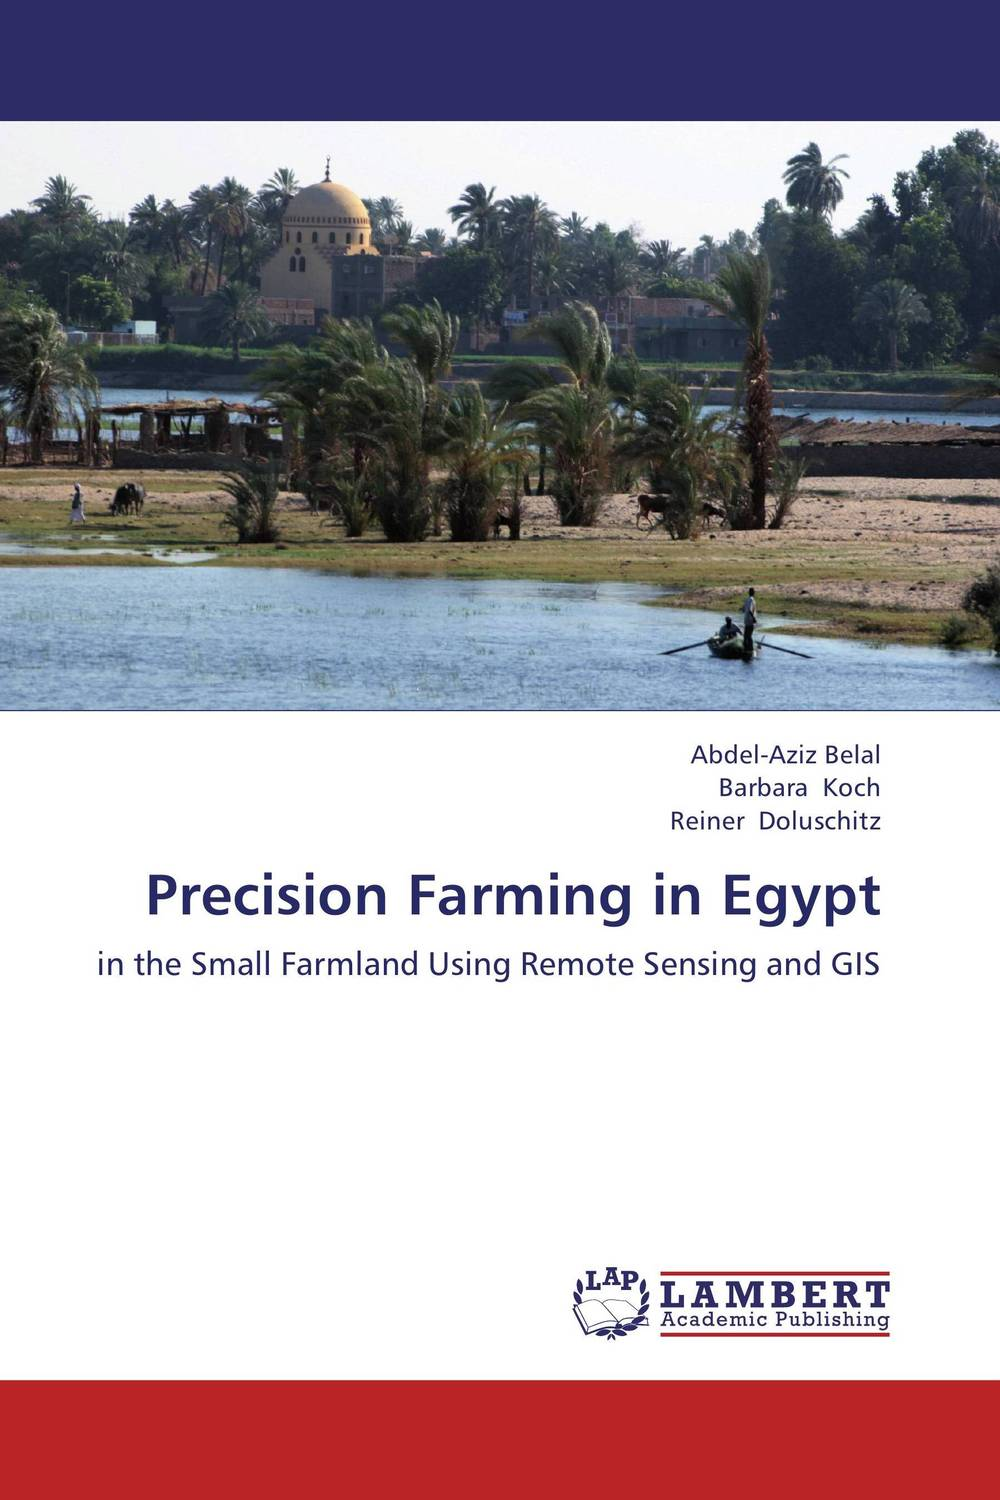 Precision Farming in Egypt precision farming in egypt